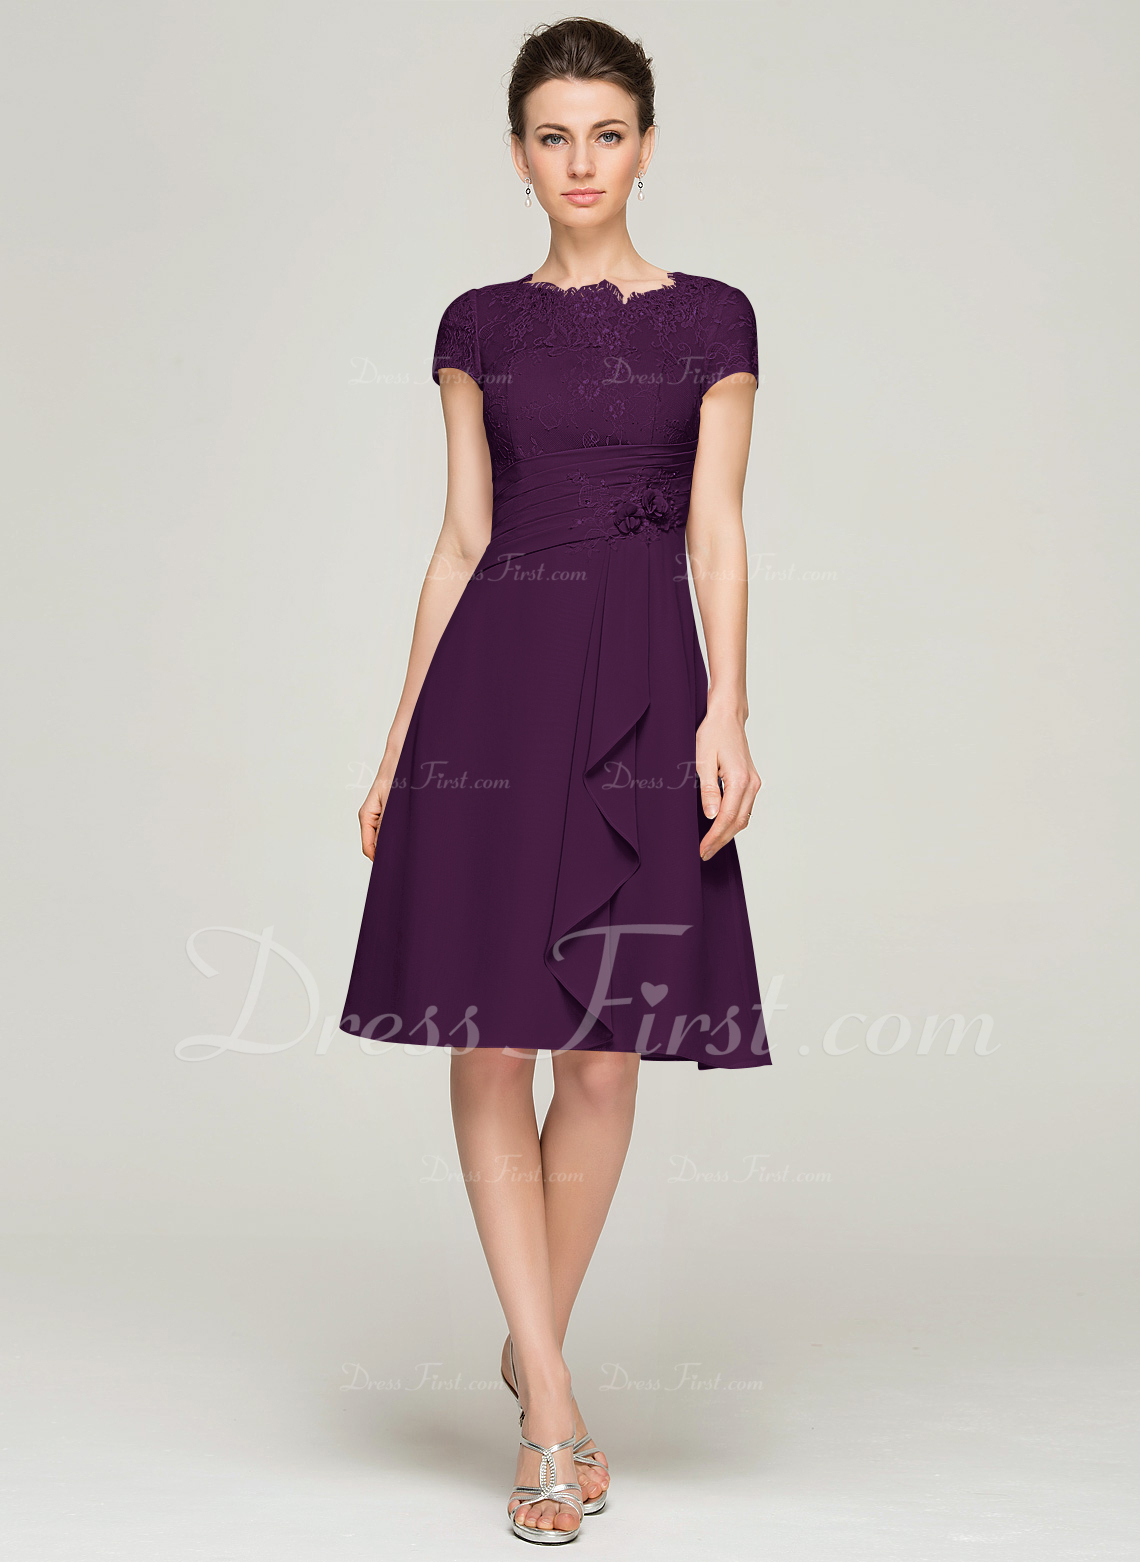 b5f0ac749d Mother of the Bride Dresses; #62576. Loading zoom. Loading. Color: Grape.  A-Line/Princess Scoop Neck Knee-Length Chiffon Lace ...